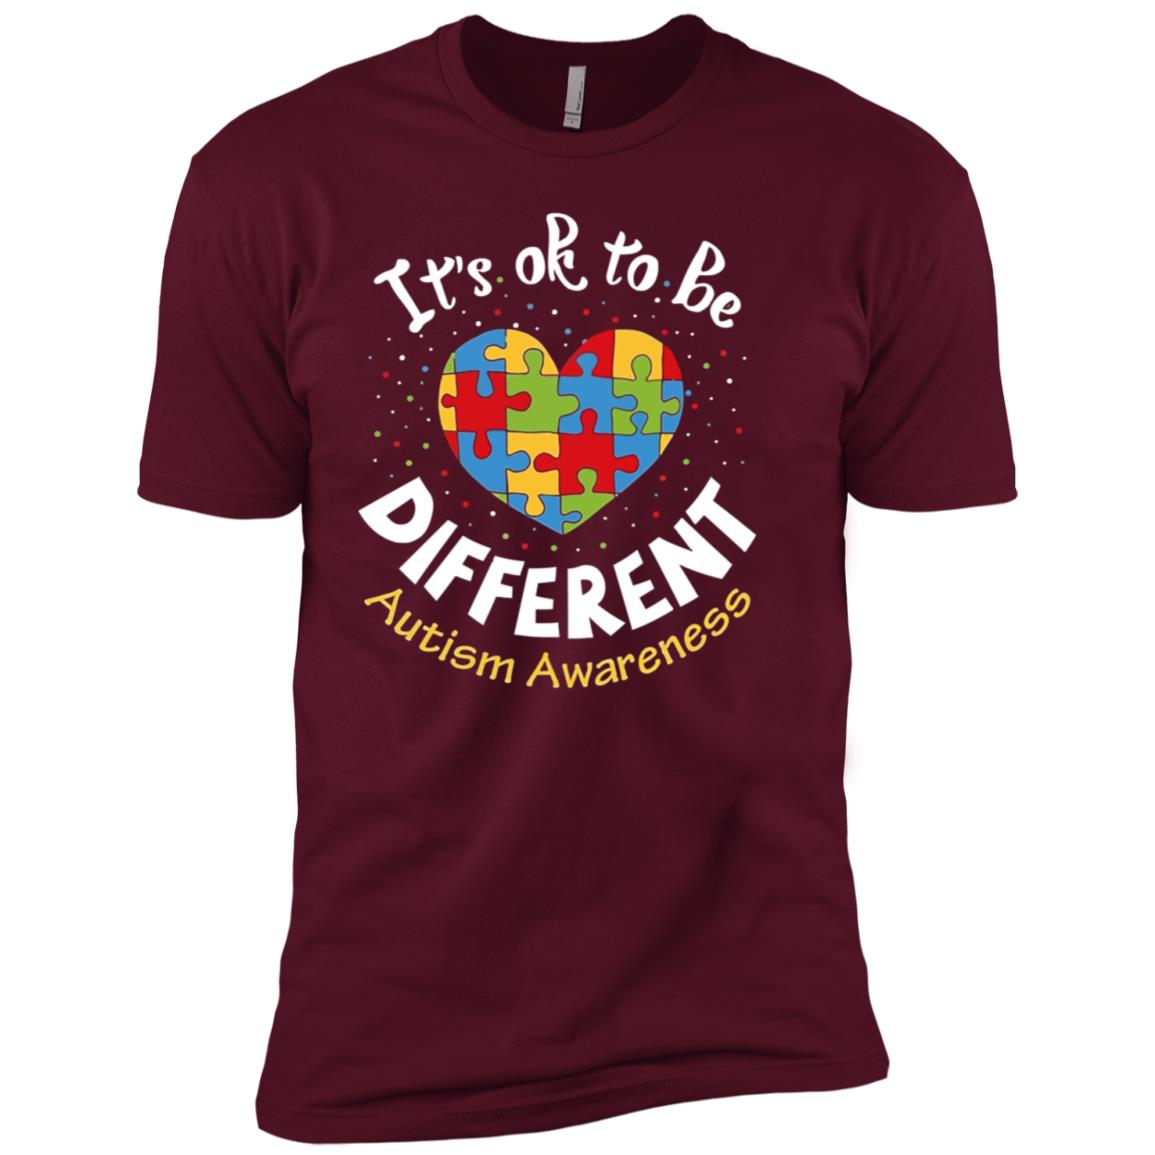 It's Ok to be different Autism Awareness Men Short Sleeve T-Shirt